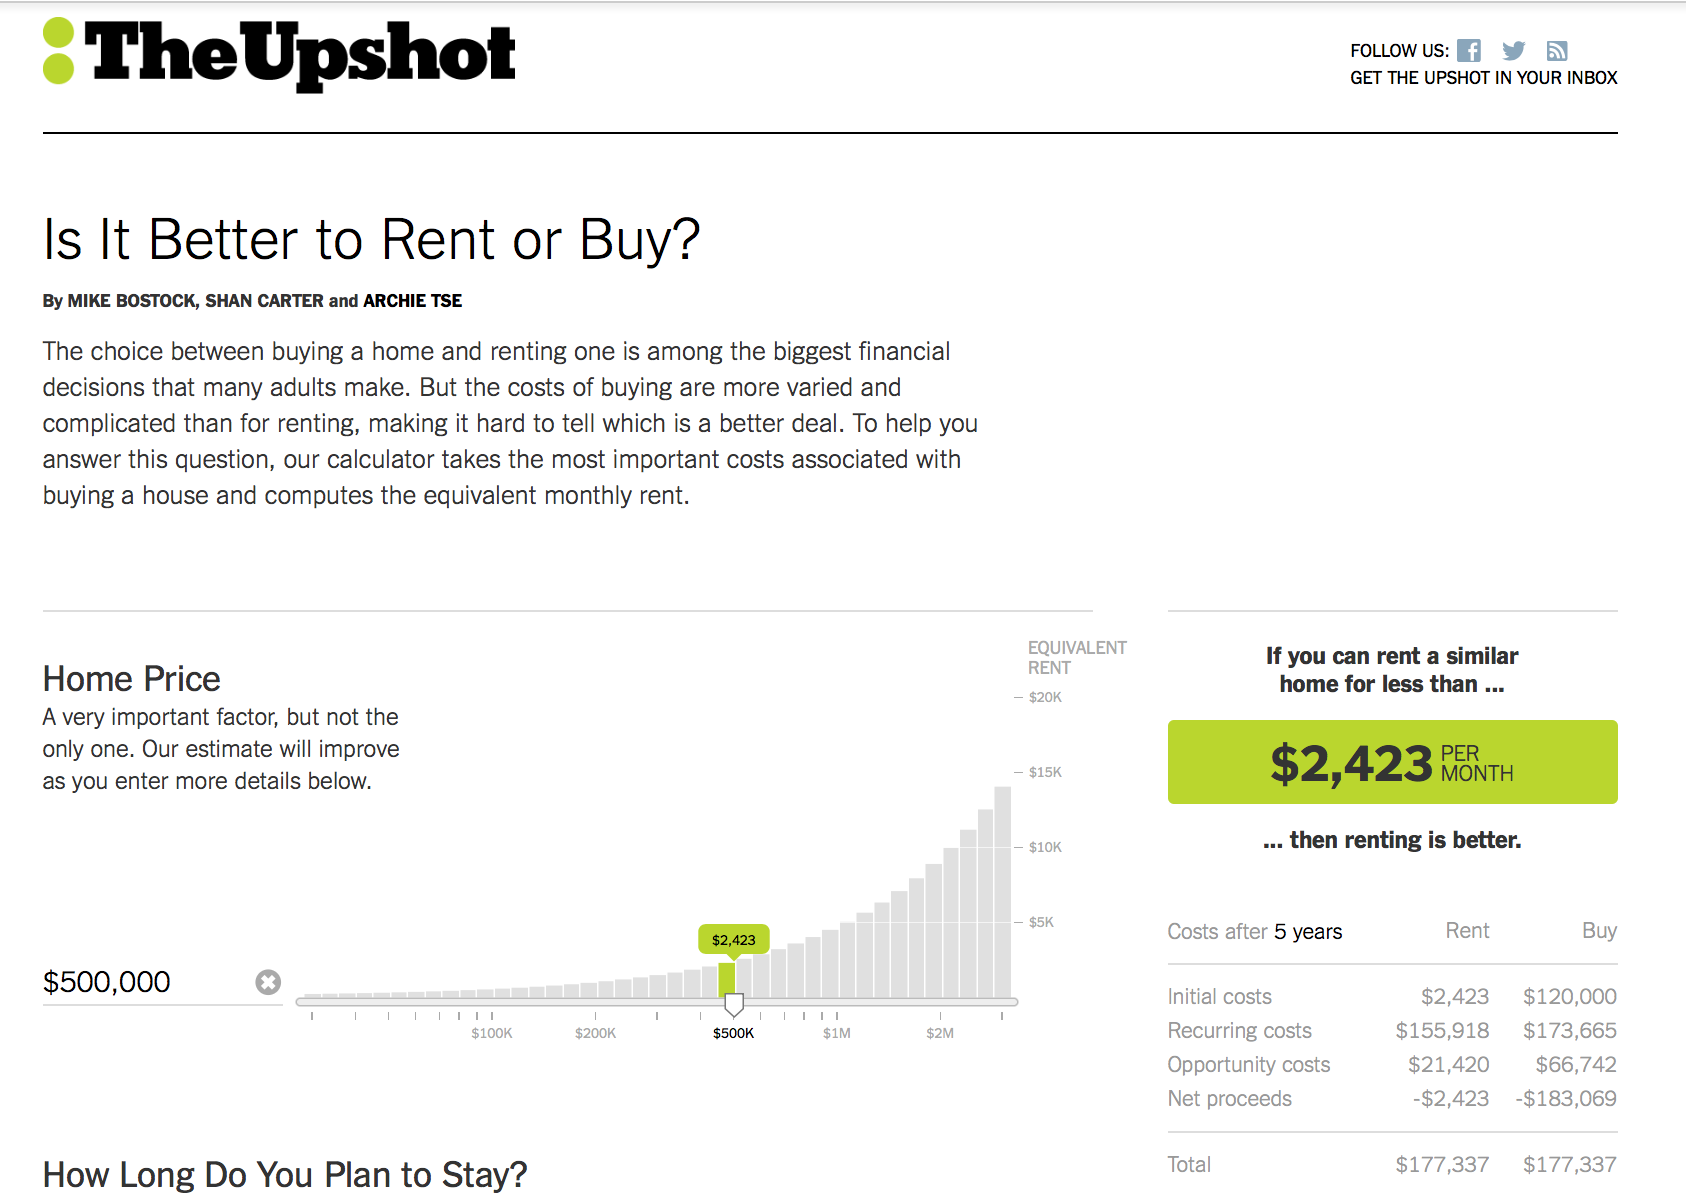 Buy Or Rent? For Millennials, There's A Third (And Better) Option